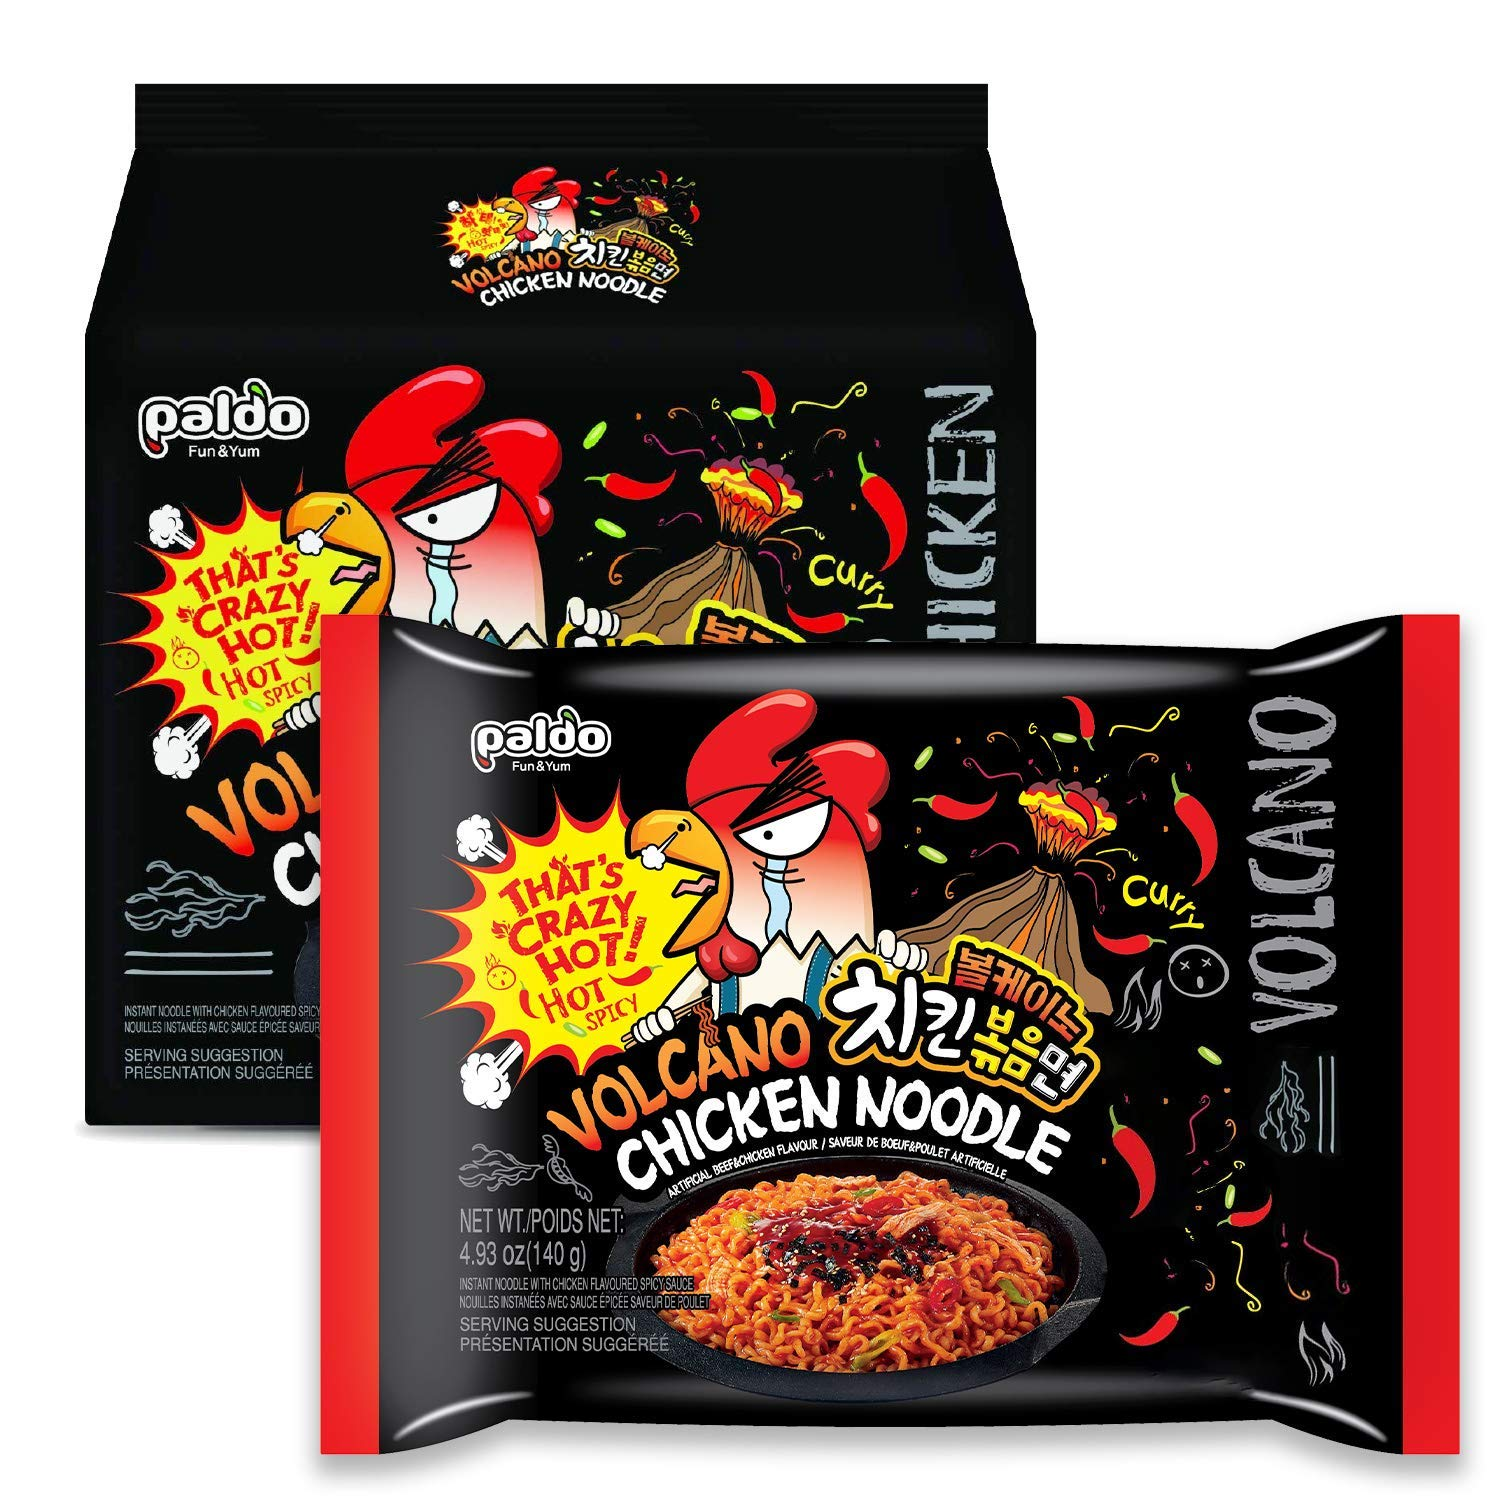 PALDO FUN & YUM Volcano Hot & Spicy Chicken Flavored Instant Ramen, 4.93 Ounce (Pack of 4)